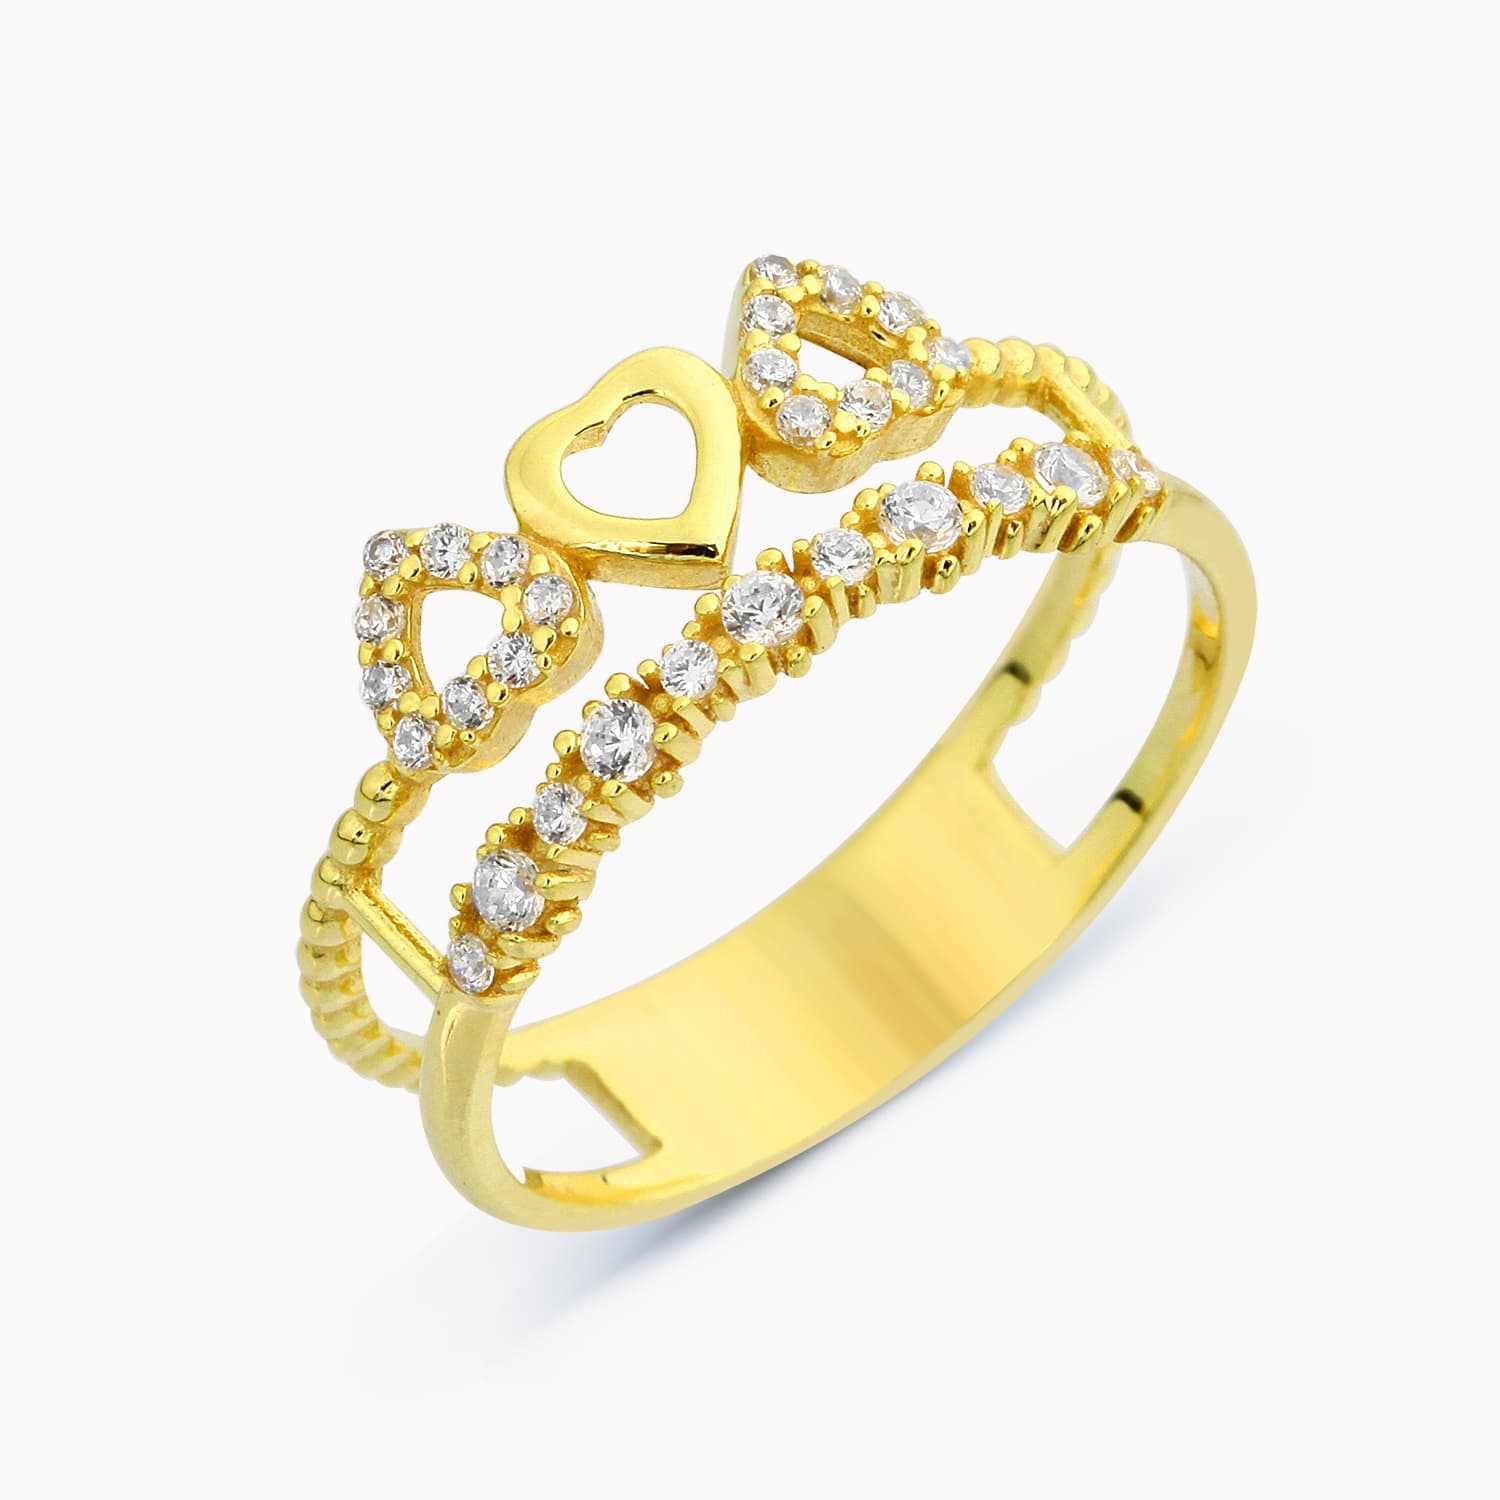 HEARTED TWIN RING